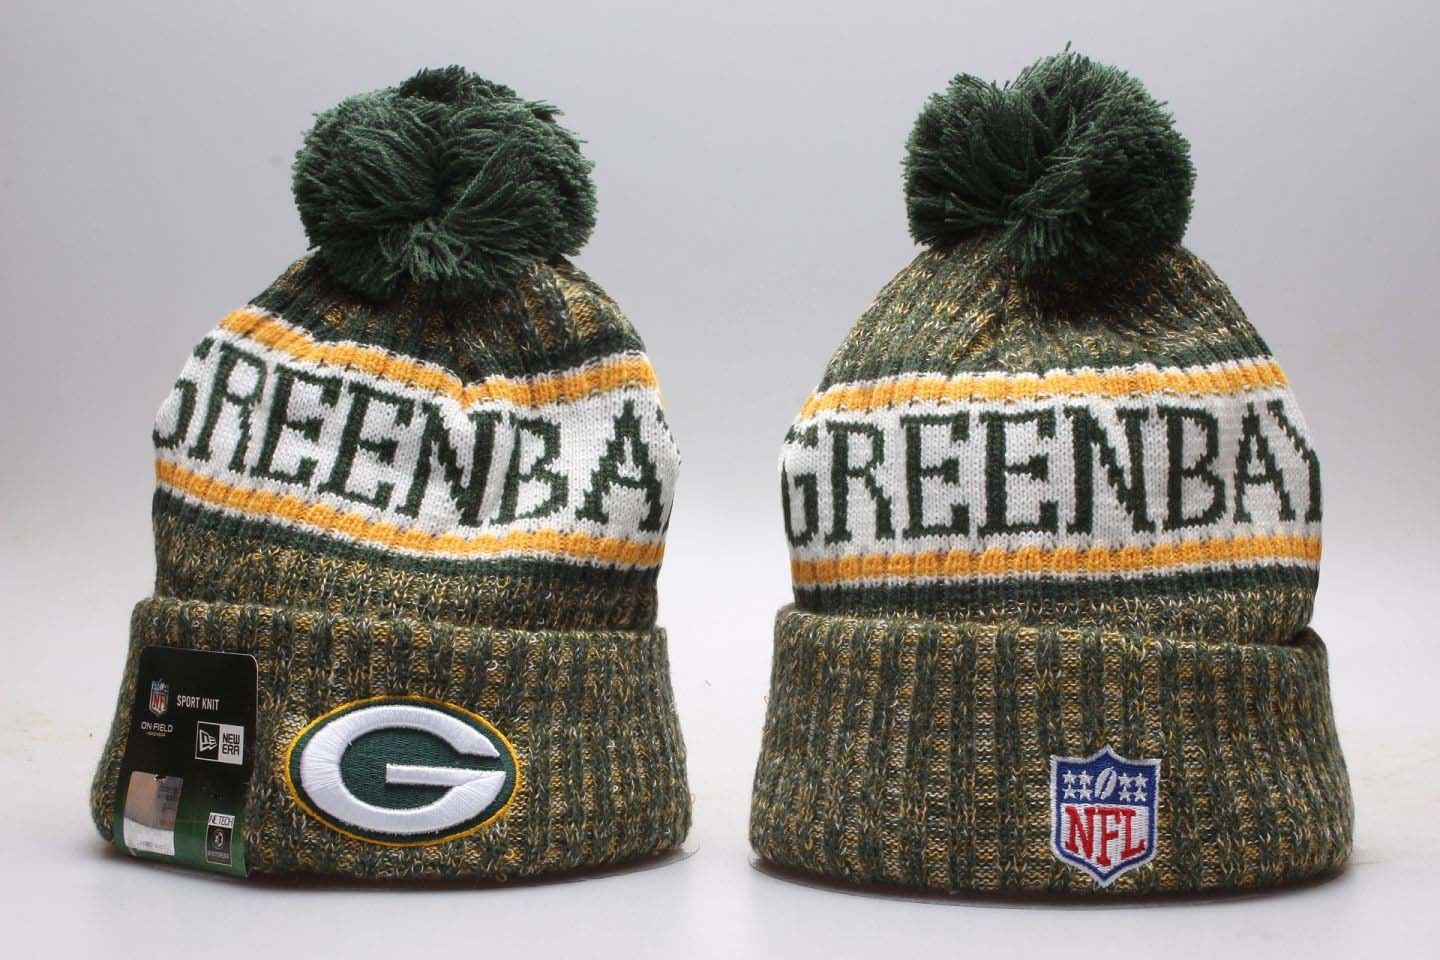 Hats 163543  New Era Green Bay Packers 2018 Sideline Winter Knit Beanie Hat  Free Shipping -  BUY IT NOW ONLY   24.99 on  eBay  green  packers  sideline  ... 6959c136ebf